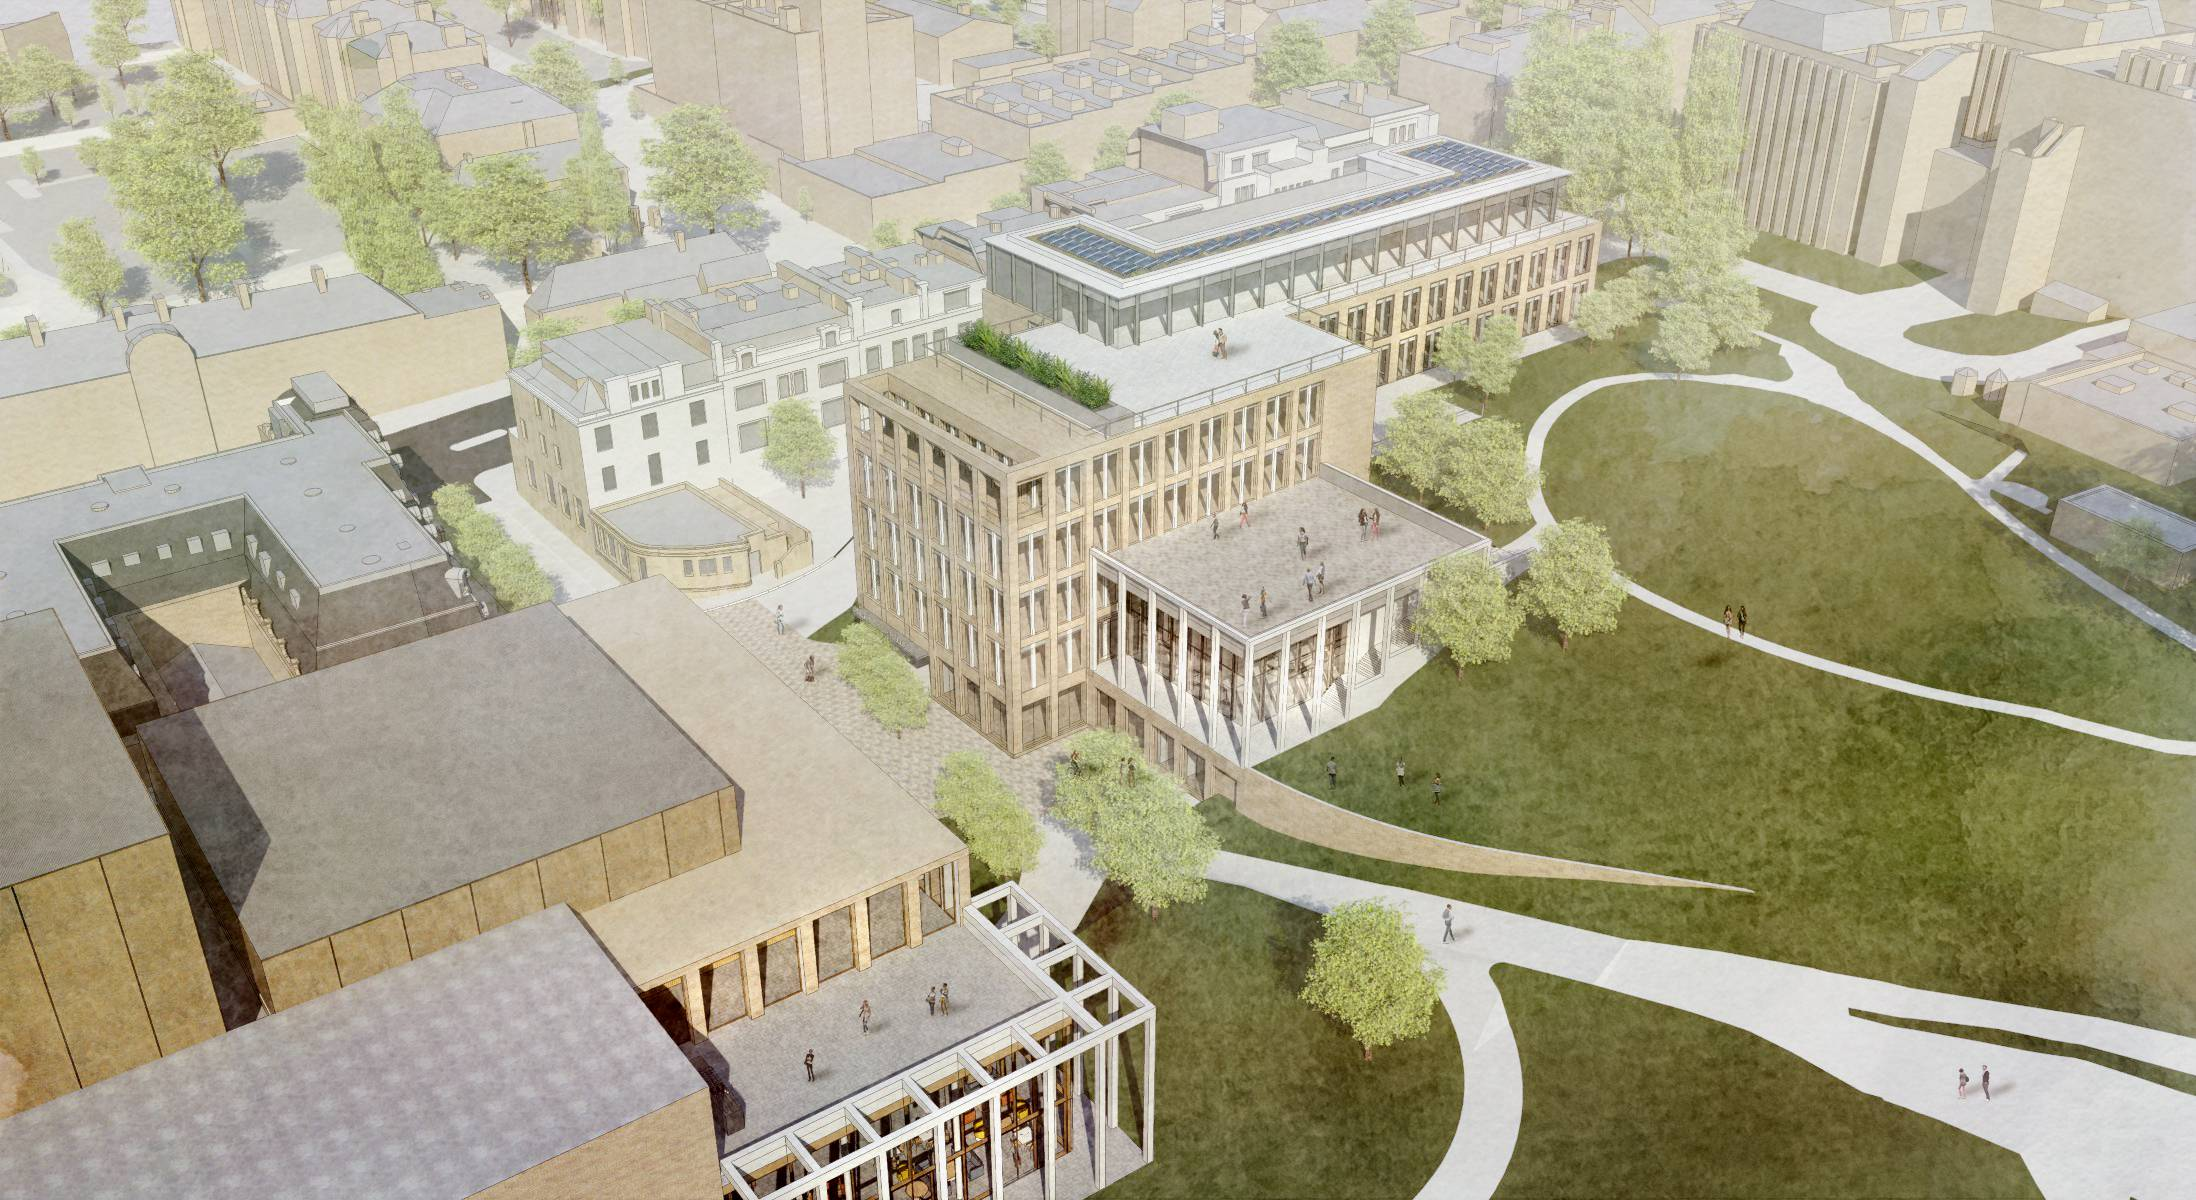 A bird's eye view of the planned theatre (left) and civic complex (right)